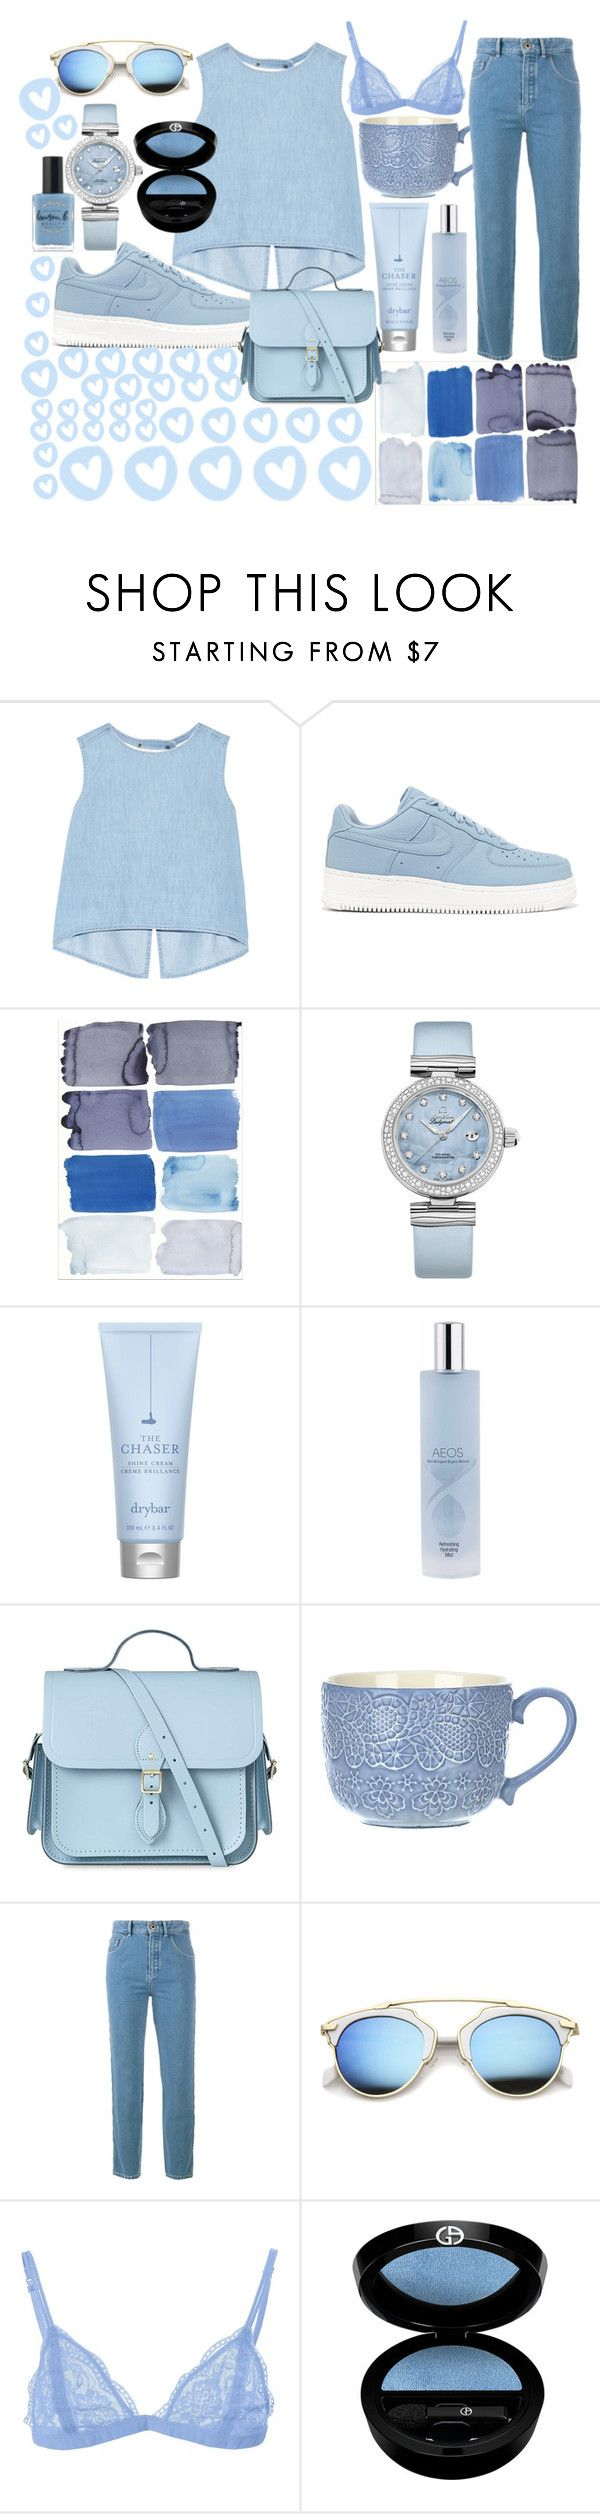 """Light blue"" by shiri-sharon ❤ liked on Polyvore featuring Steve J & Yoni P, NIKE, OMEGA, Drybar, AEOS, The Cambridge Satchel Company, Chloé, ZeroUV, Giorgio Armani and Lauren B. Beauty"